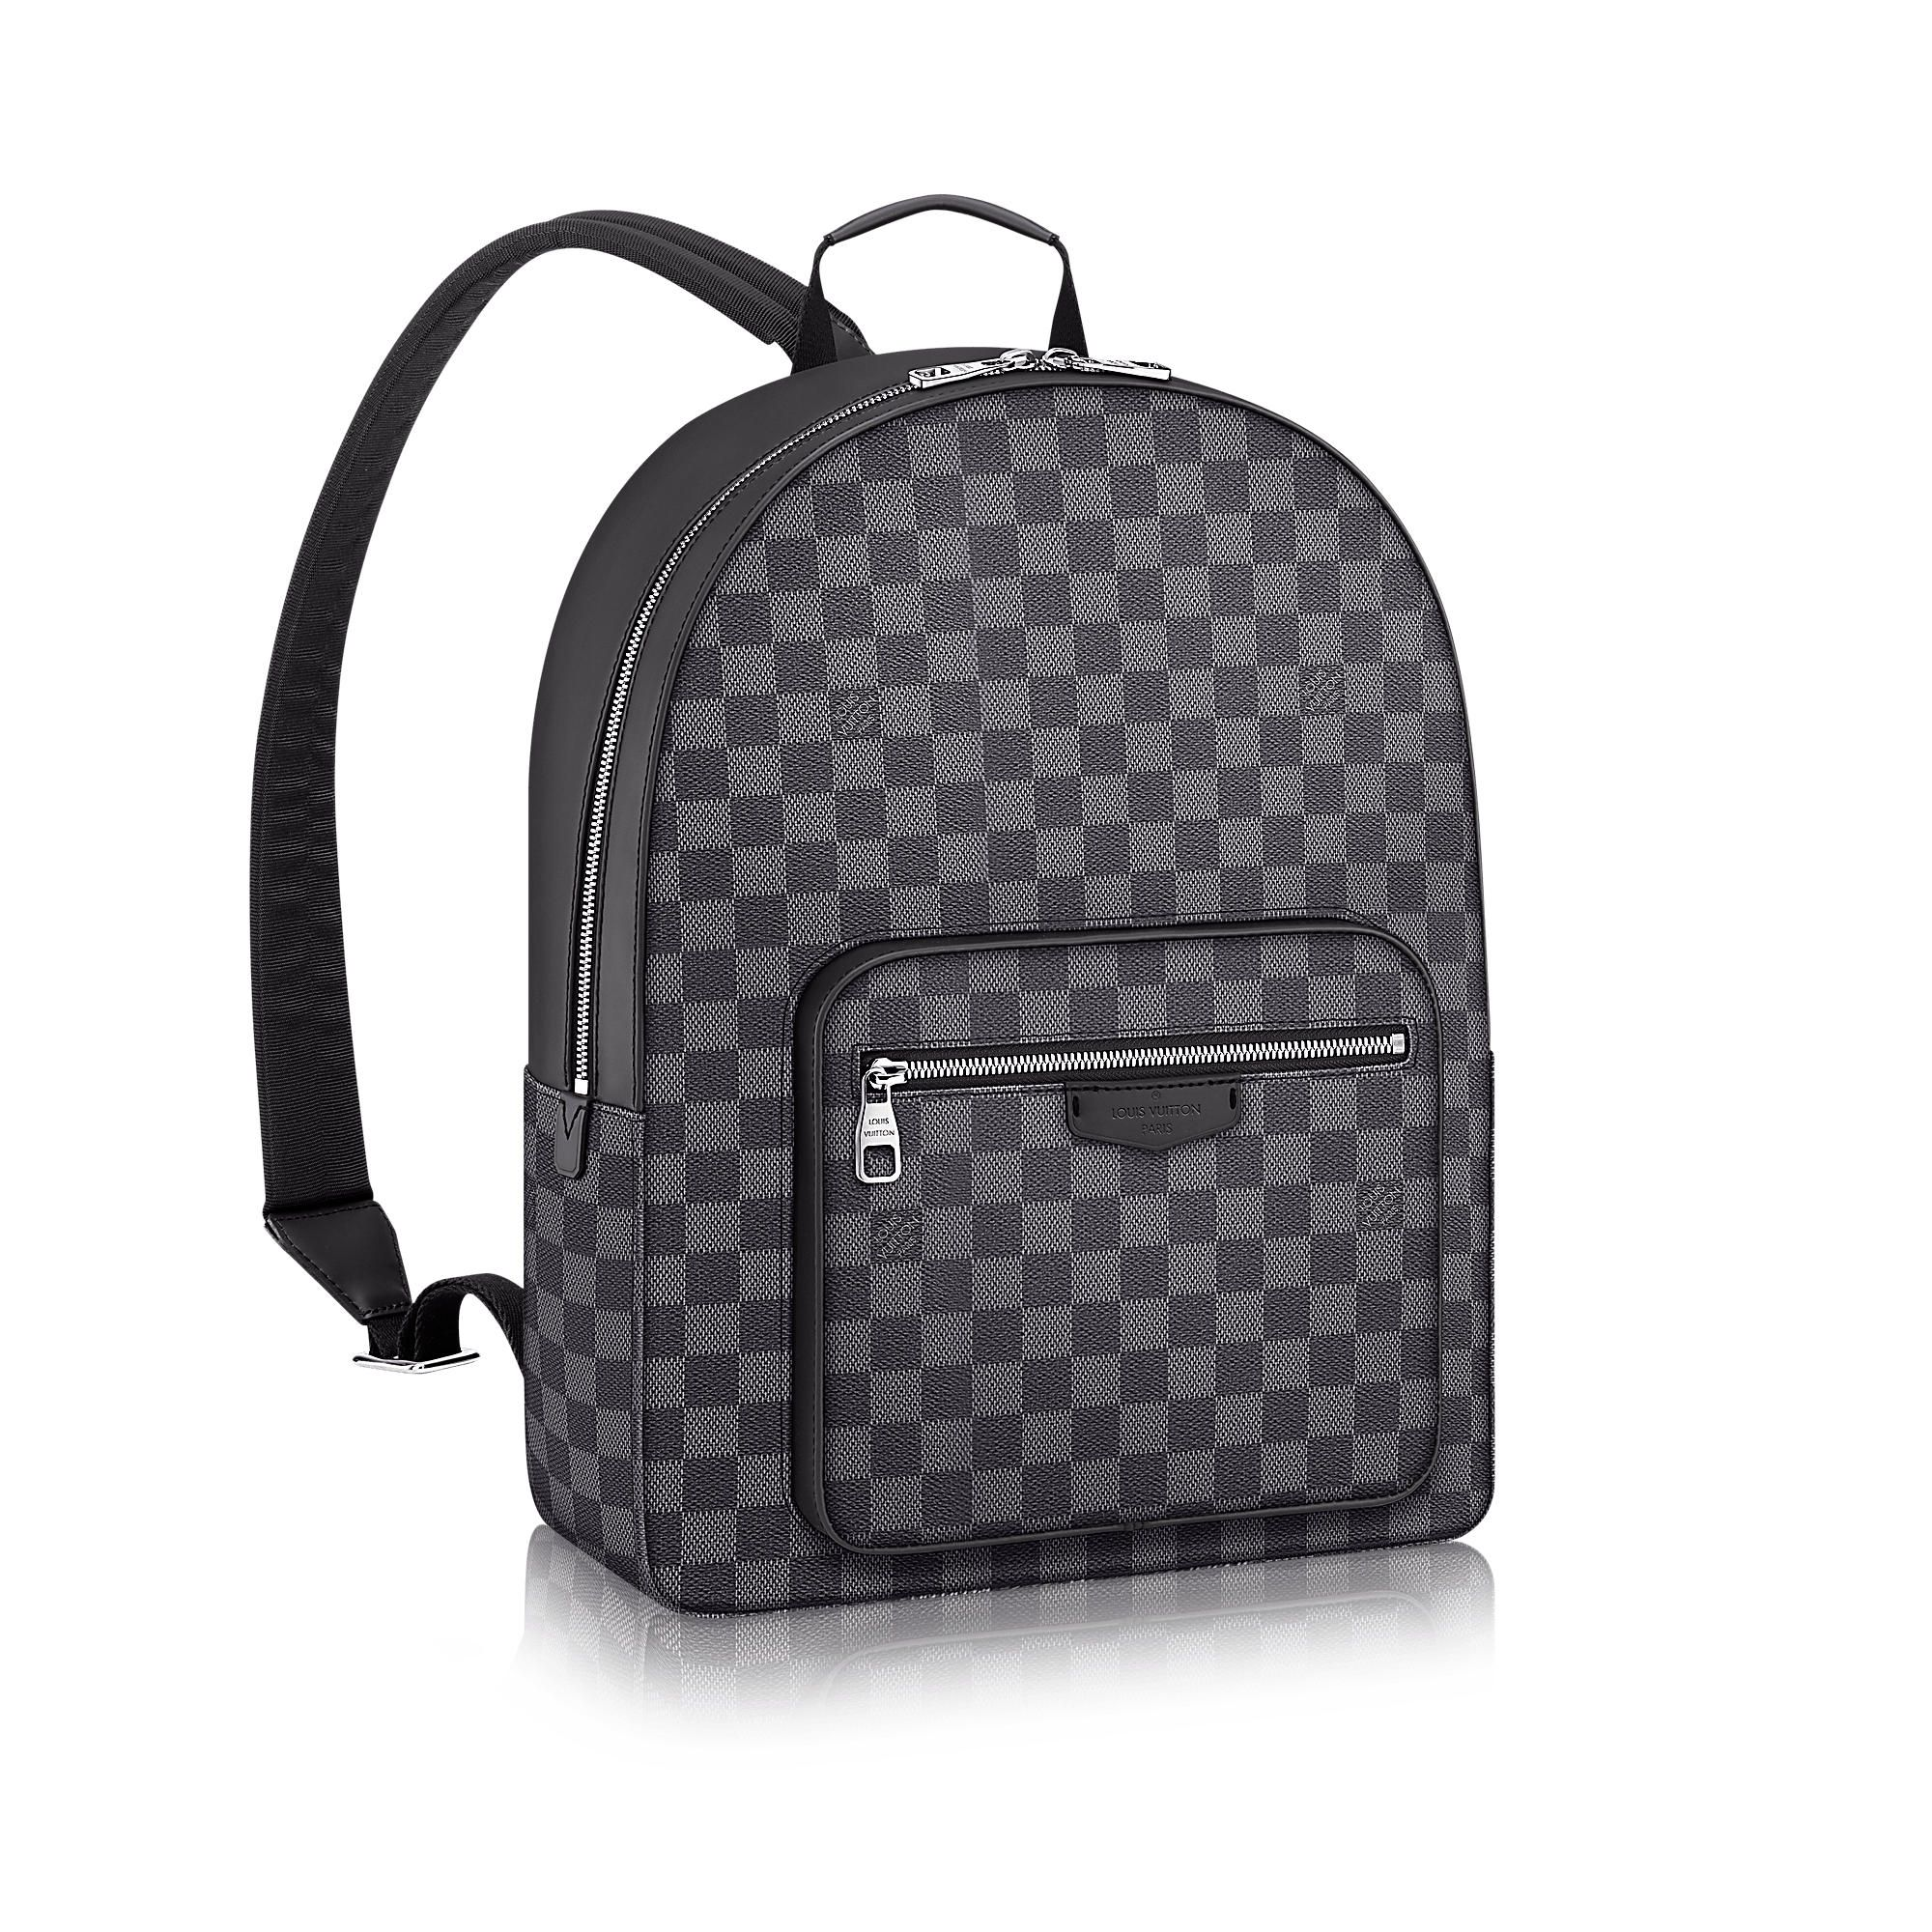 7de15fa1d Pin by Dallas Spears on Clothes | Pinterest | Louis vuitton, Backpacks and  Clothes